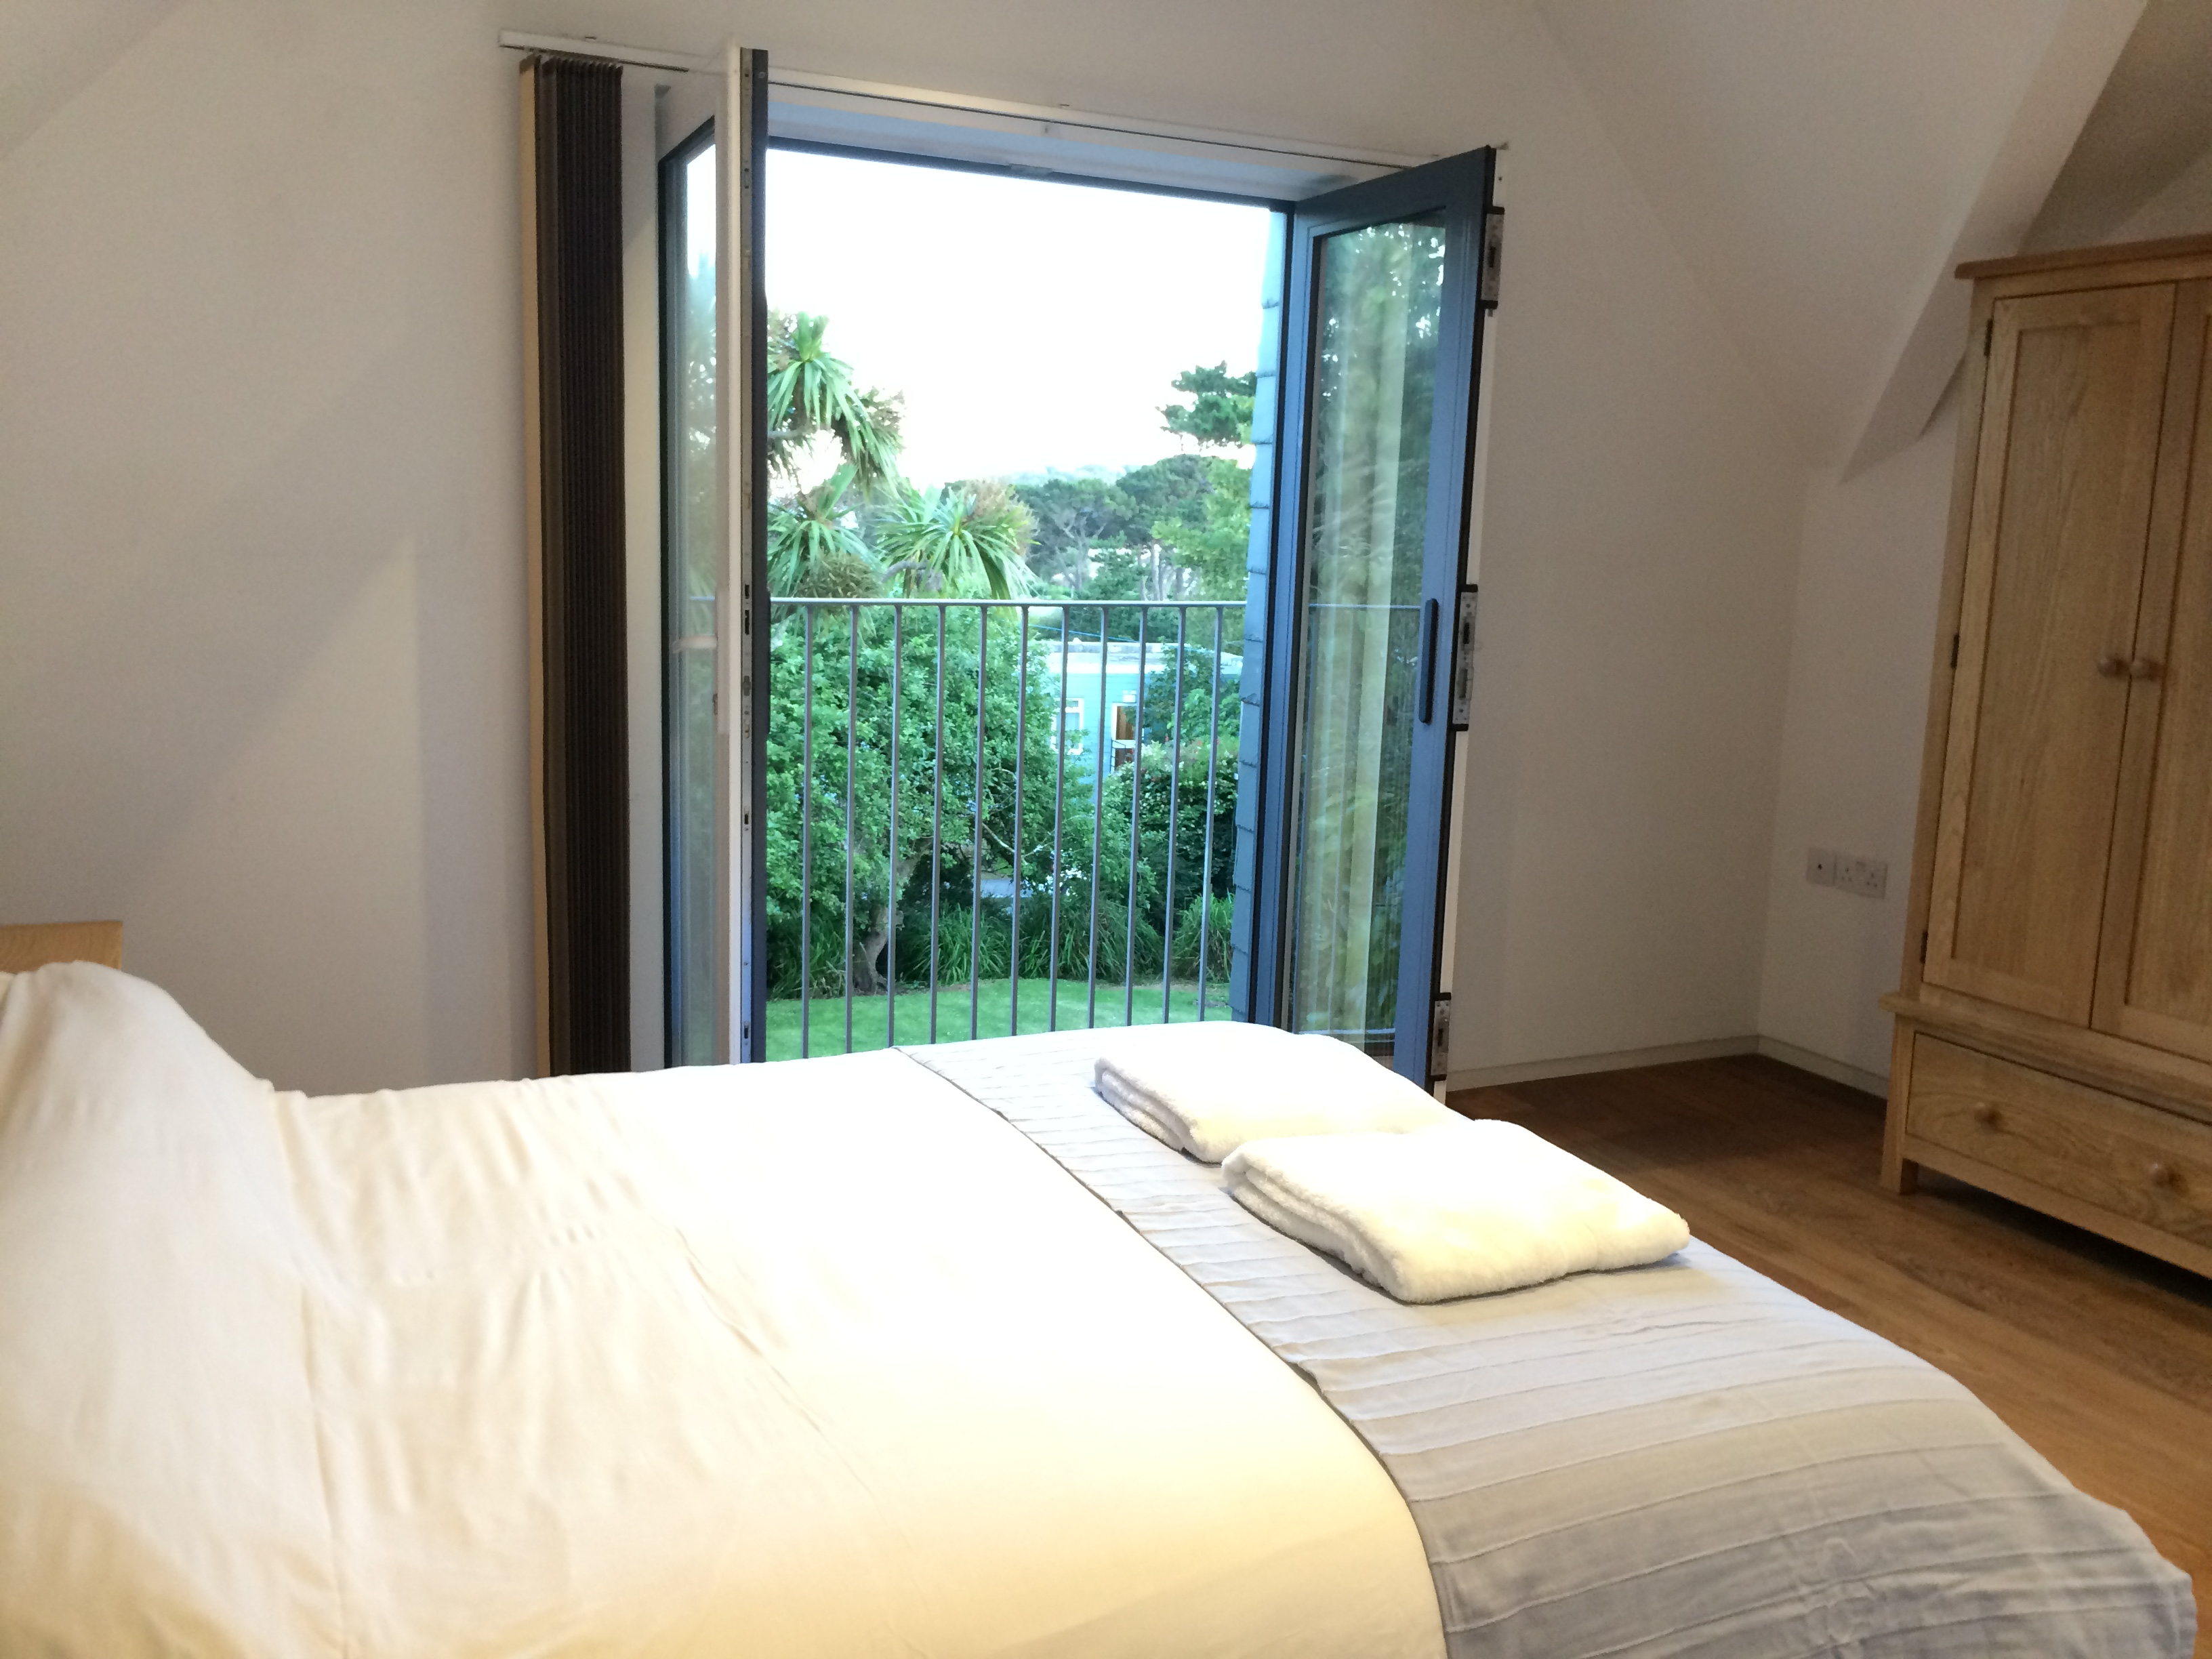 Bedroom 2 with Kingsize Bed & Balcony overlooking garden